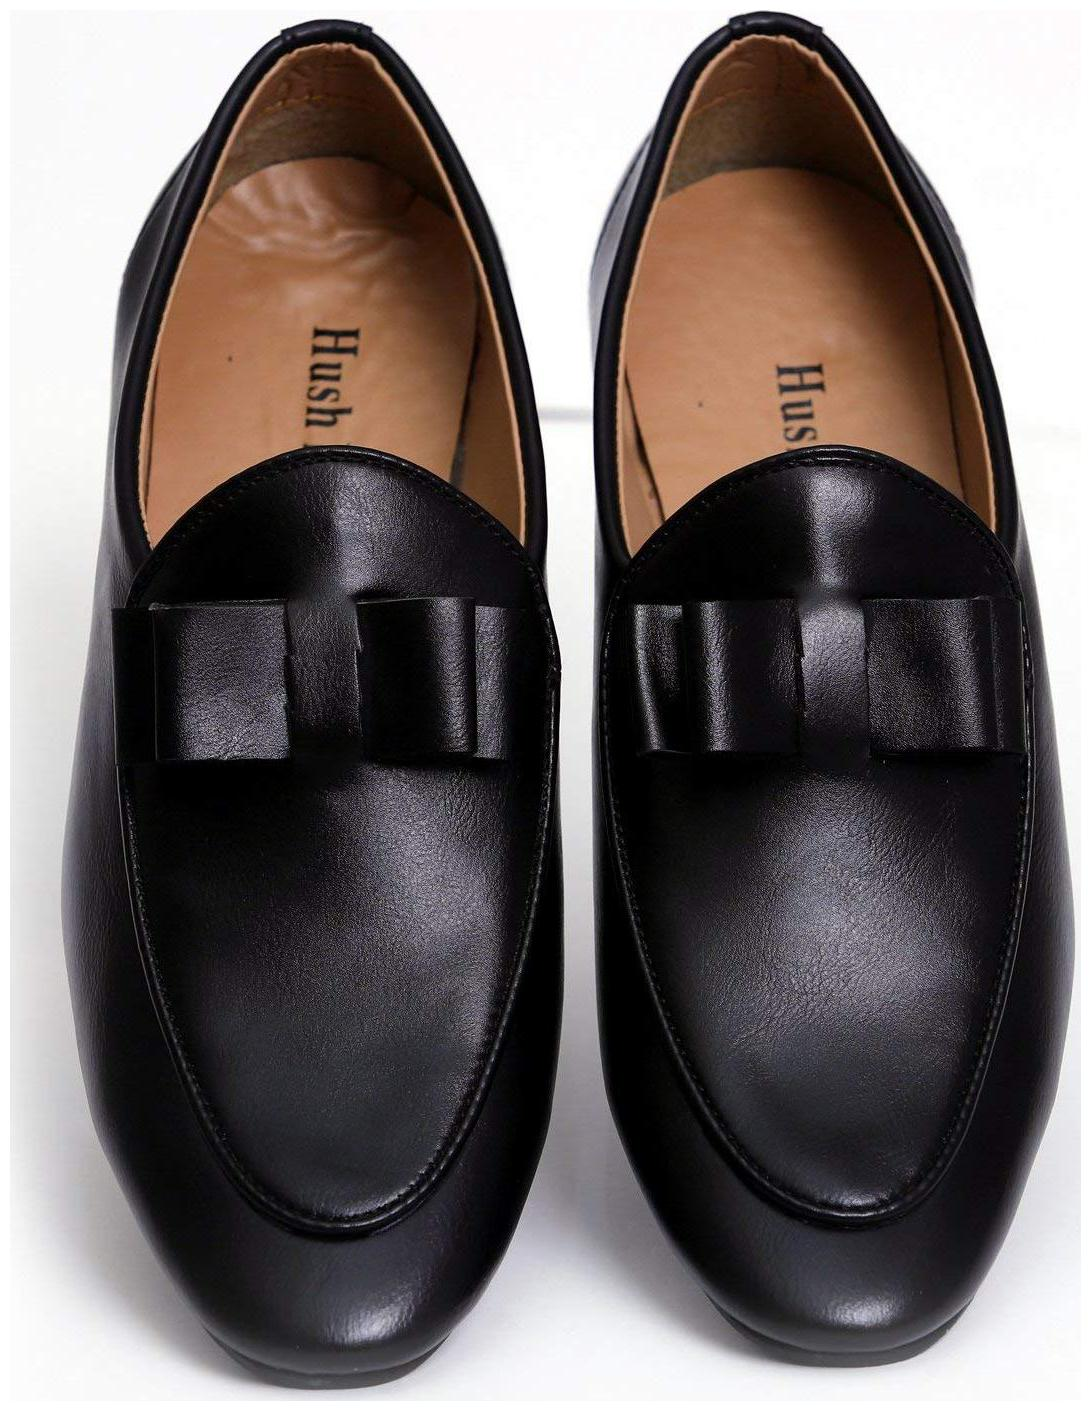 7d697db1b8e09 Buy HUSH BERRY Men Black Loafer Online at Low Prices in India -  Paytmmall.com